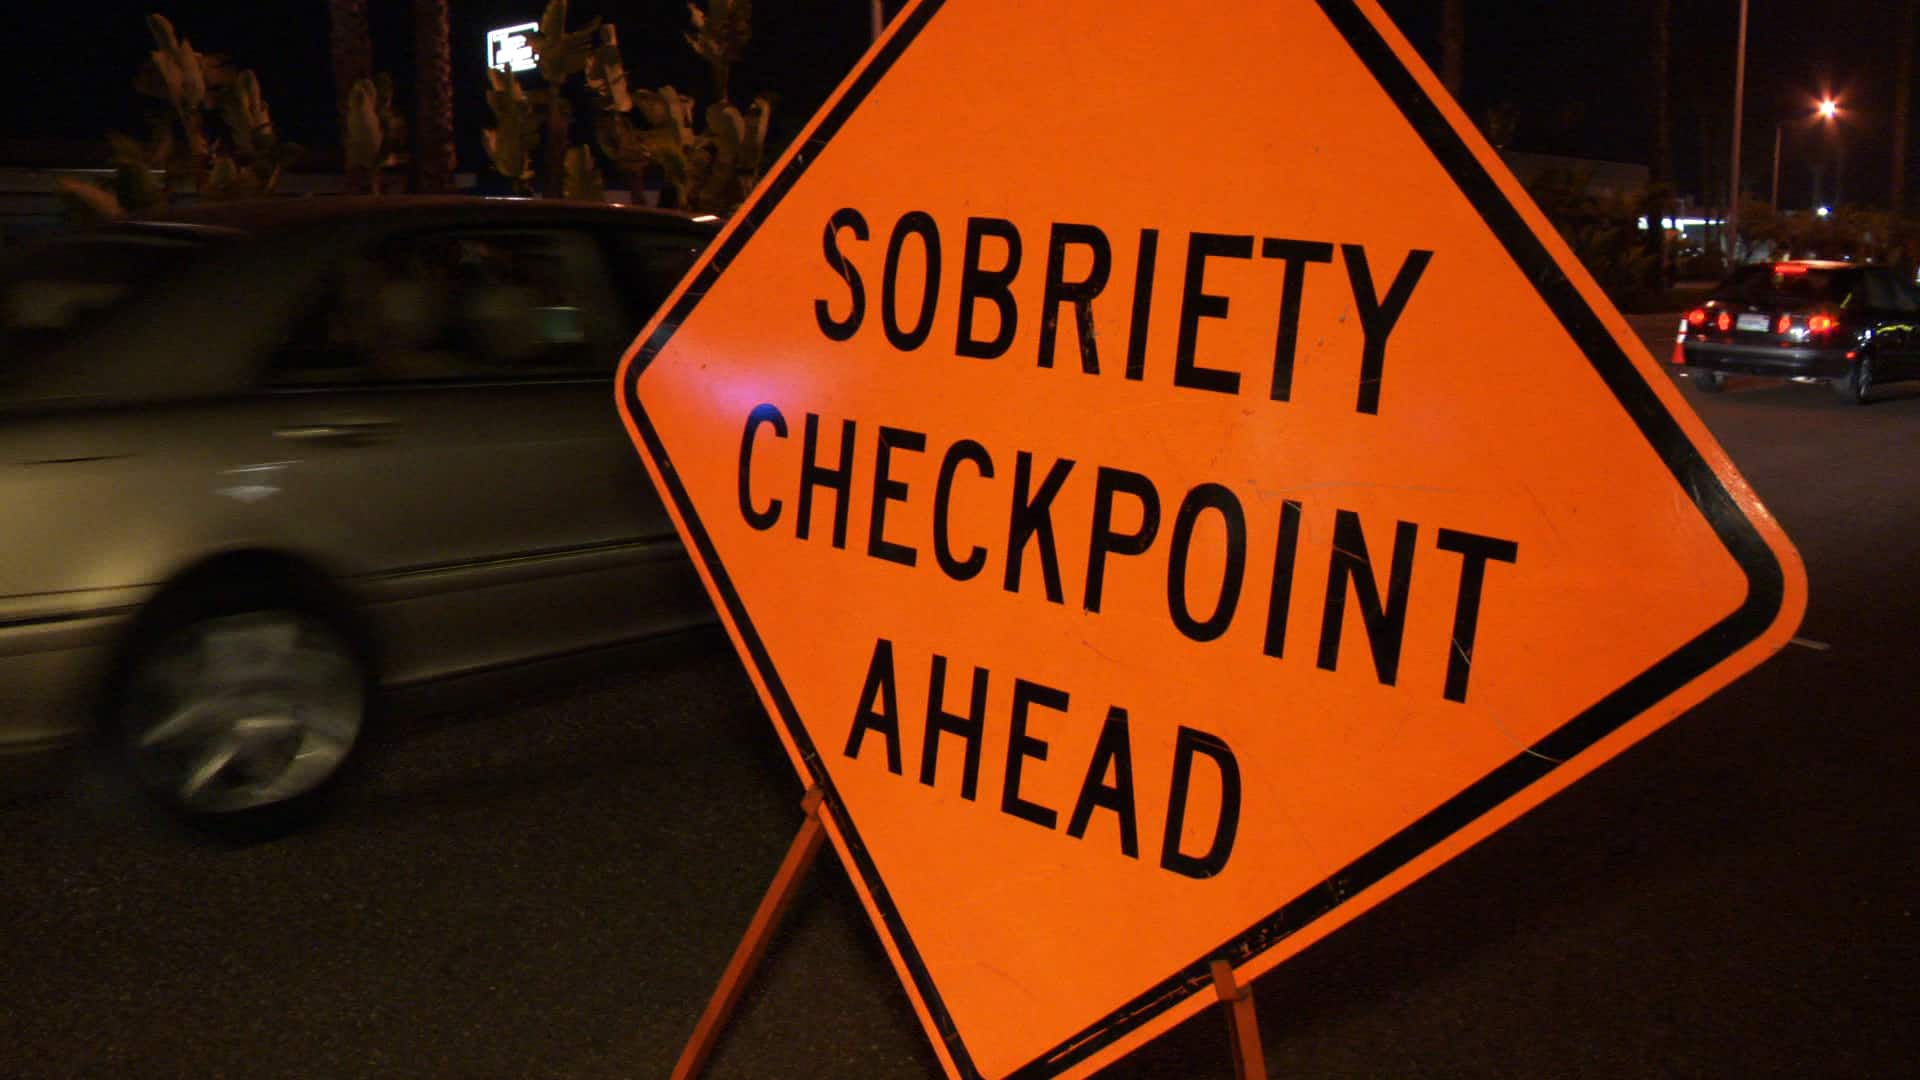 utah, sobriety, attorney, dui, legal, lawyer, sr22, non-owner, non-driver, without a car, checkpoint, rehab